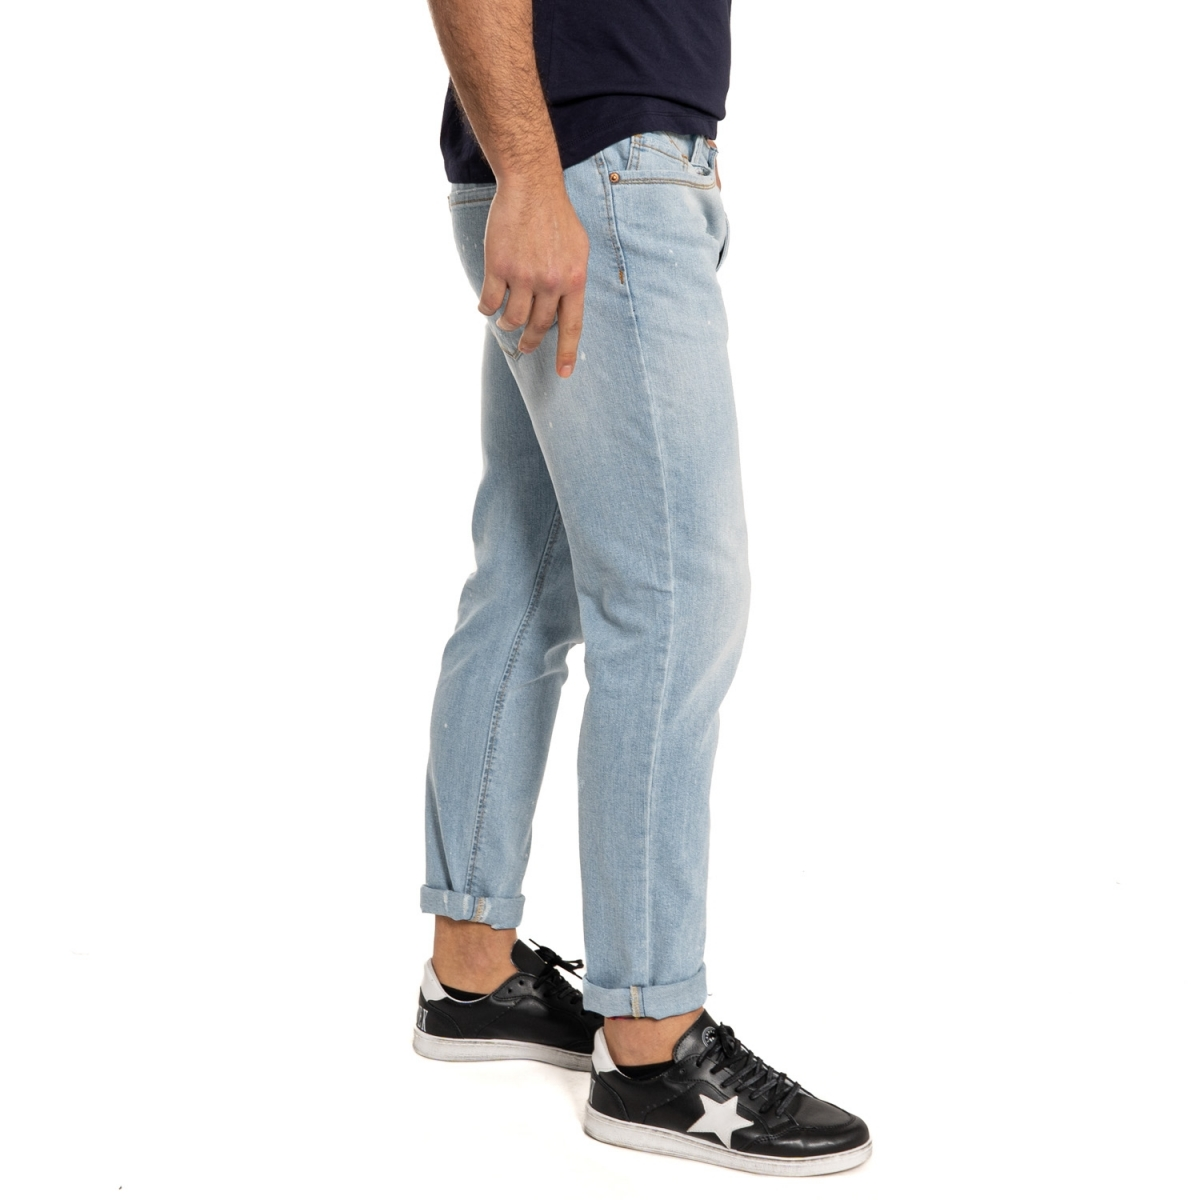 men's clothing sales Denim LPHM1090-3 BLU Cafedelmar Shop